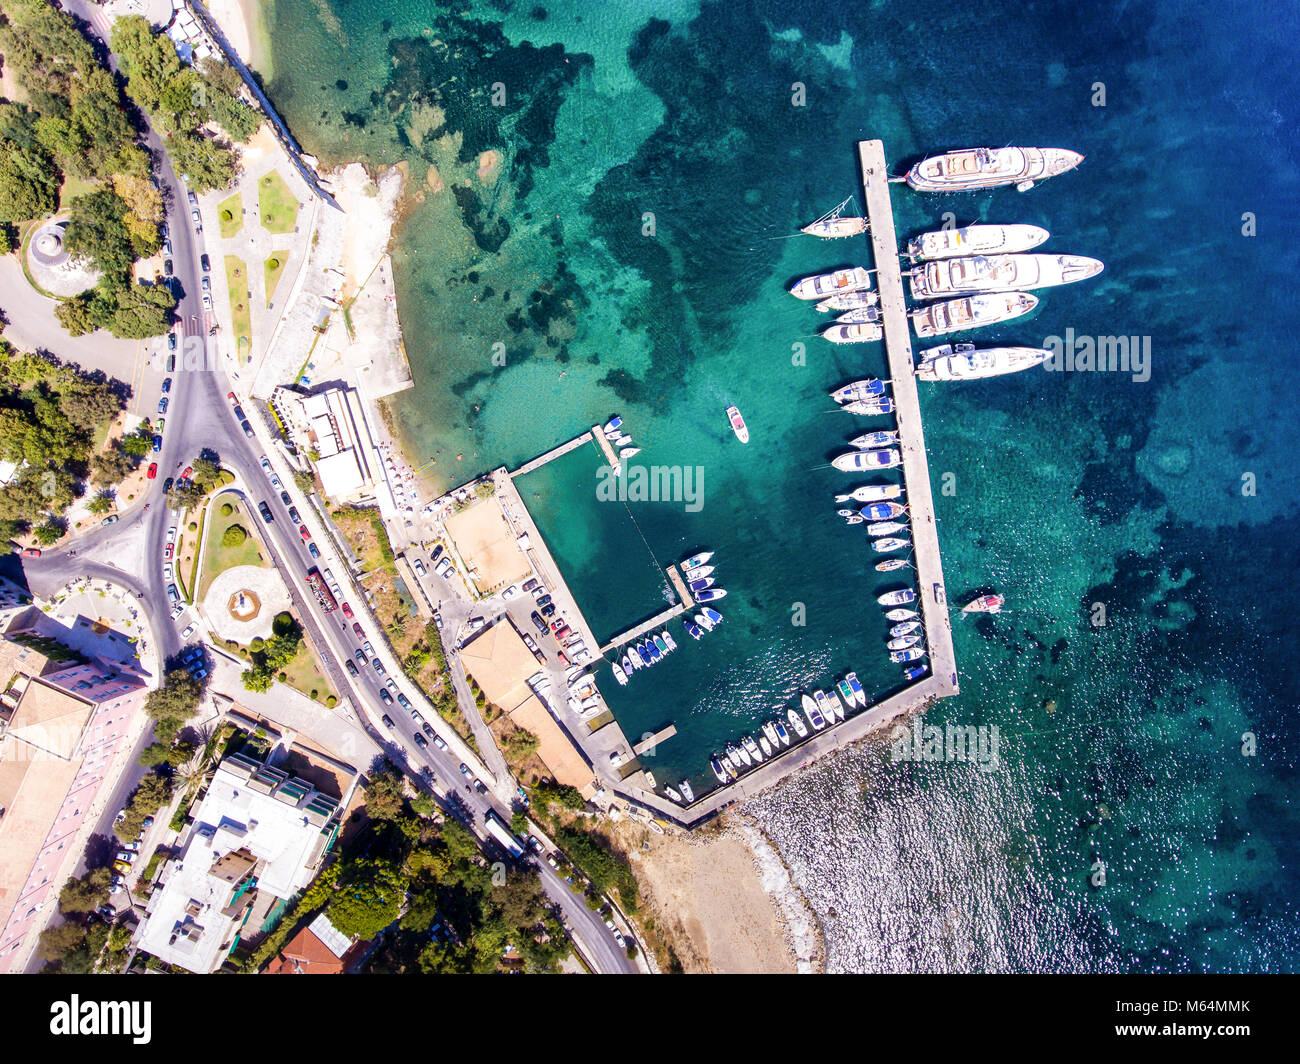 Corfu town new yacht harbour as seen from above. Aerial view of the capital of the island Corfu - Kerkyra, Greece. Stock Photo